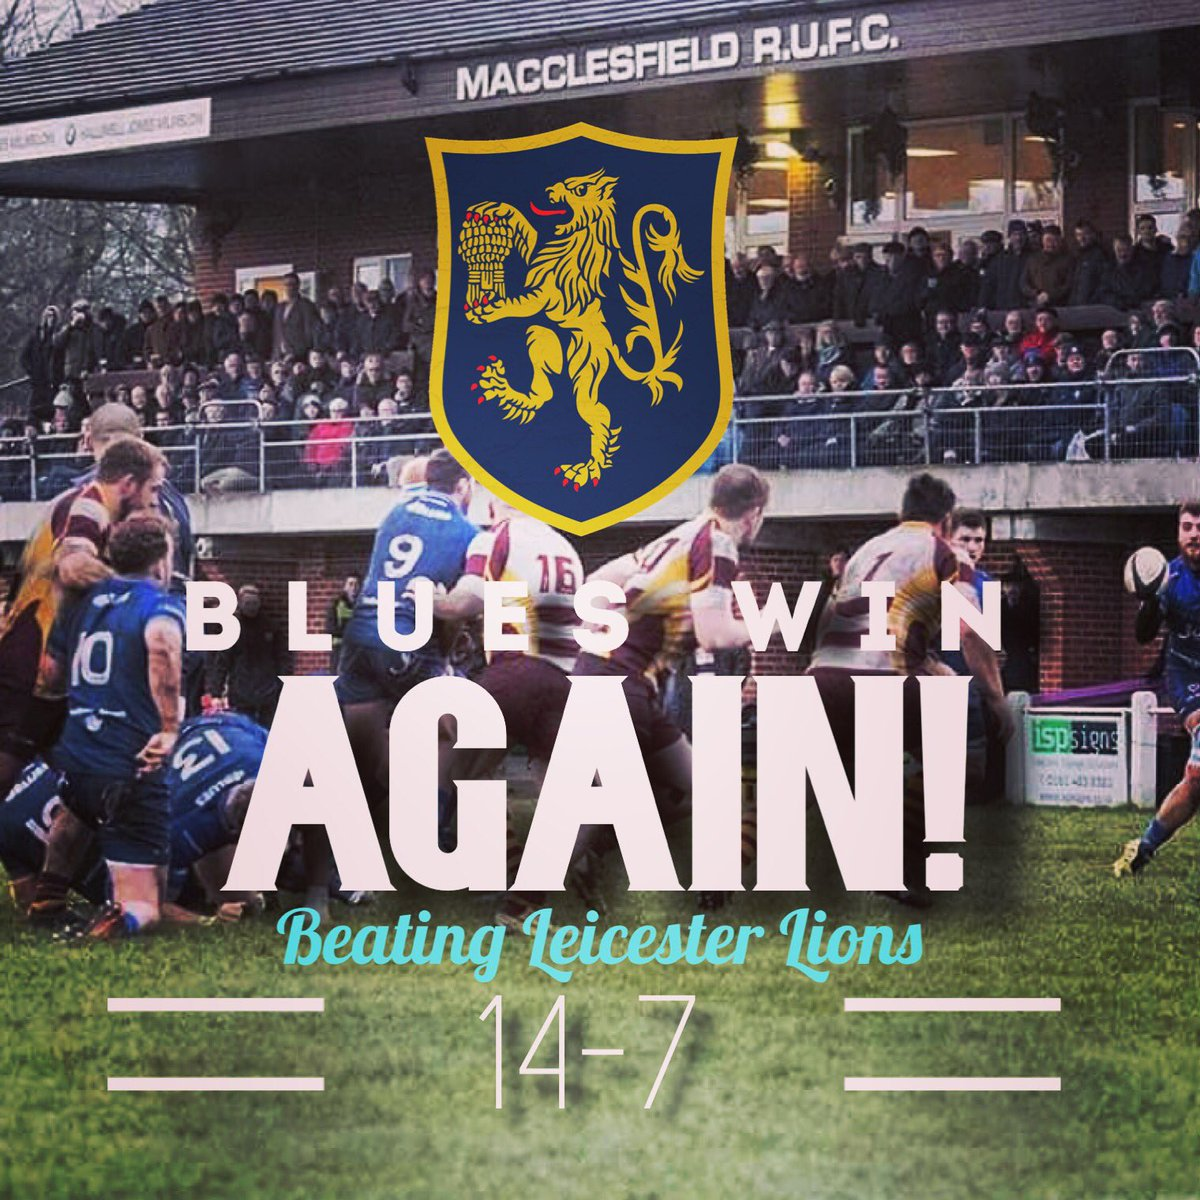 test Twitter Media - The Blues pick up their 4th Win in a row!! #fourinarow #bluesareback #backingmacc https://t.co/k6qetNoEta